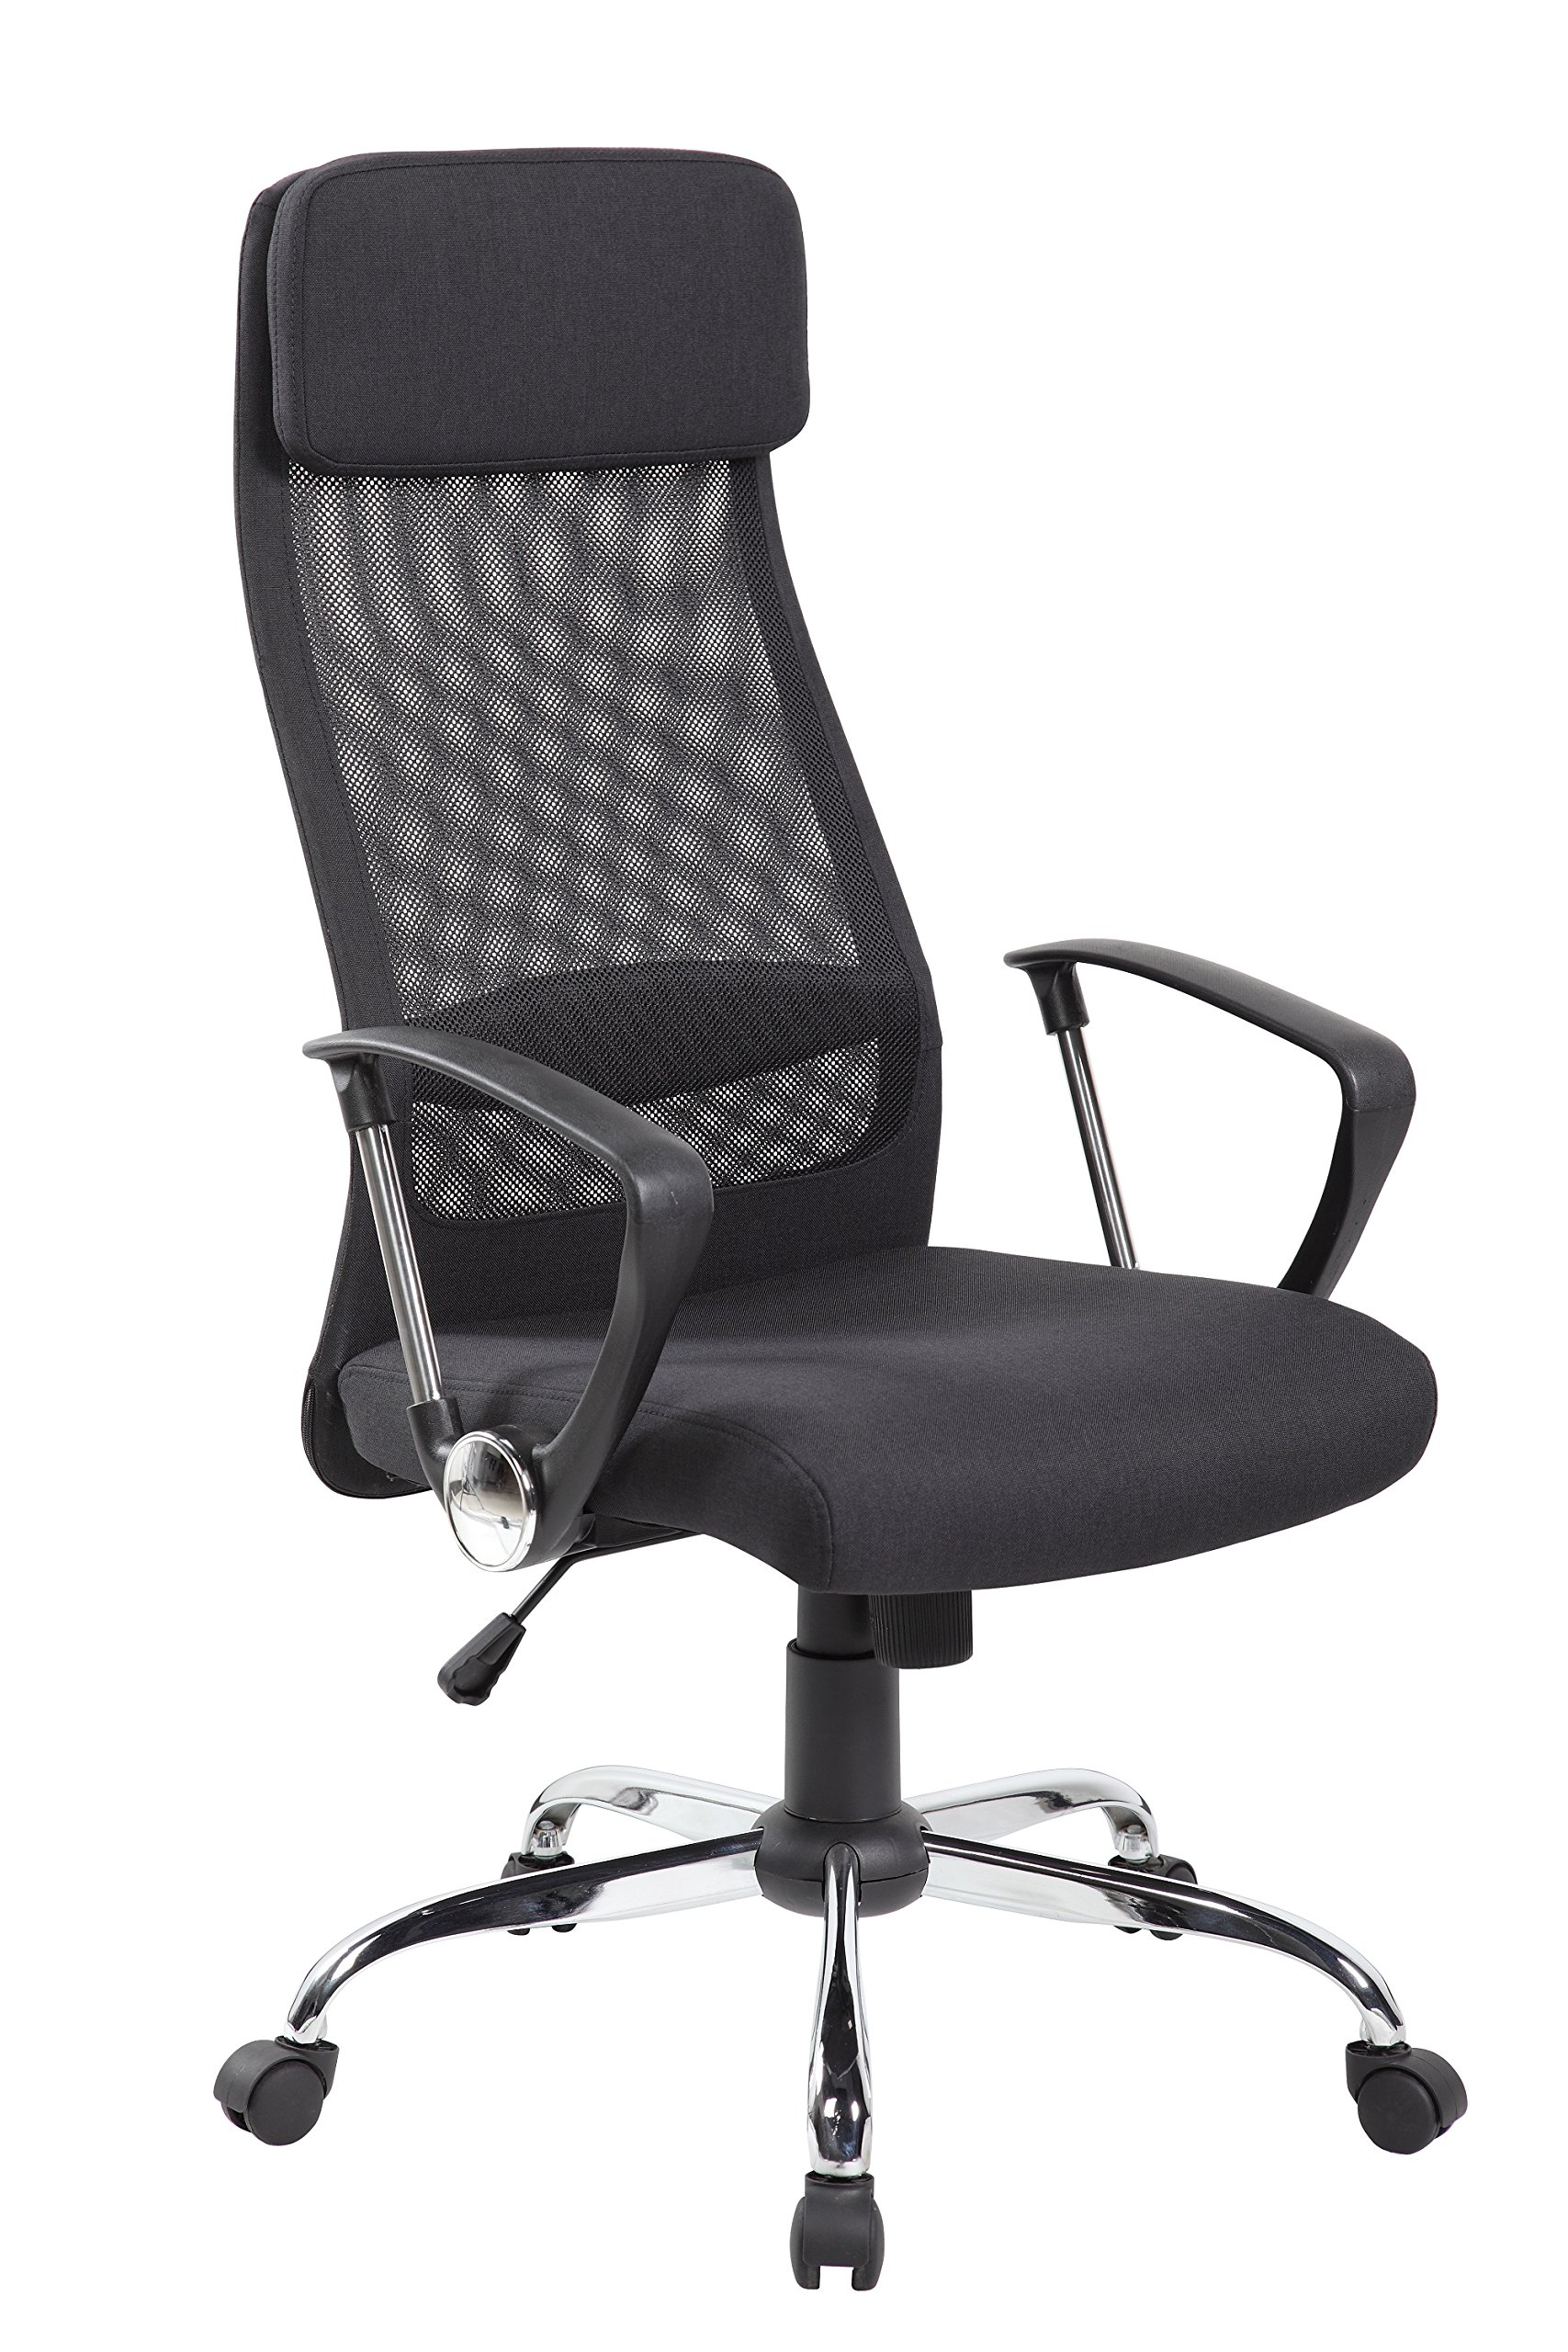 United Seating High Back, Mesh and Fabric, Executive and Managerial Computer Desk, Swivel Office Chair with Fabric Upholstery Headrest and Seat